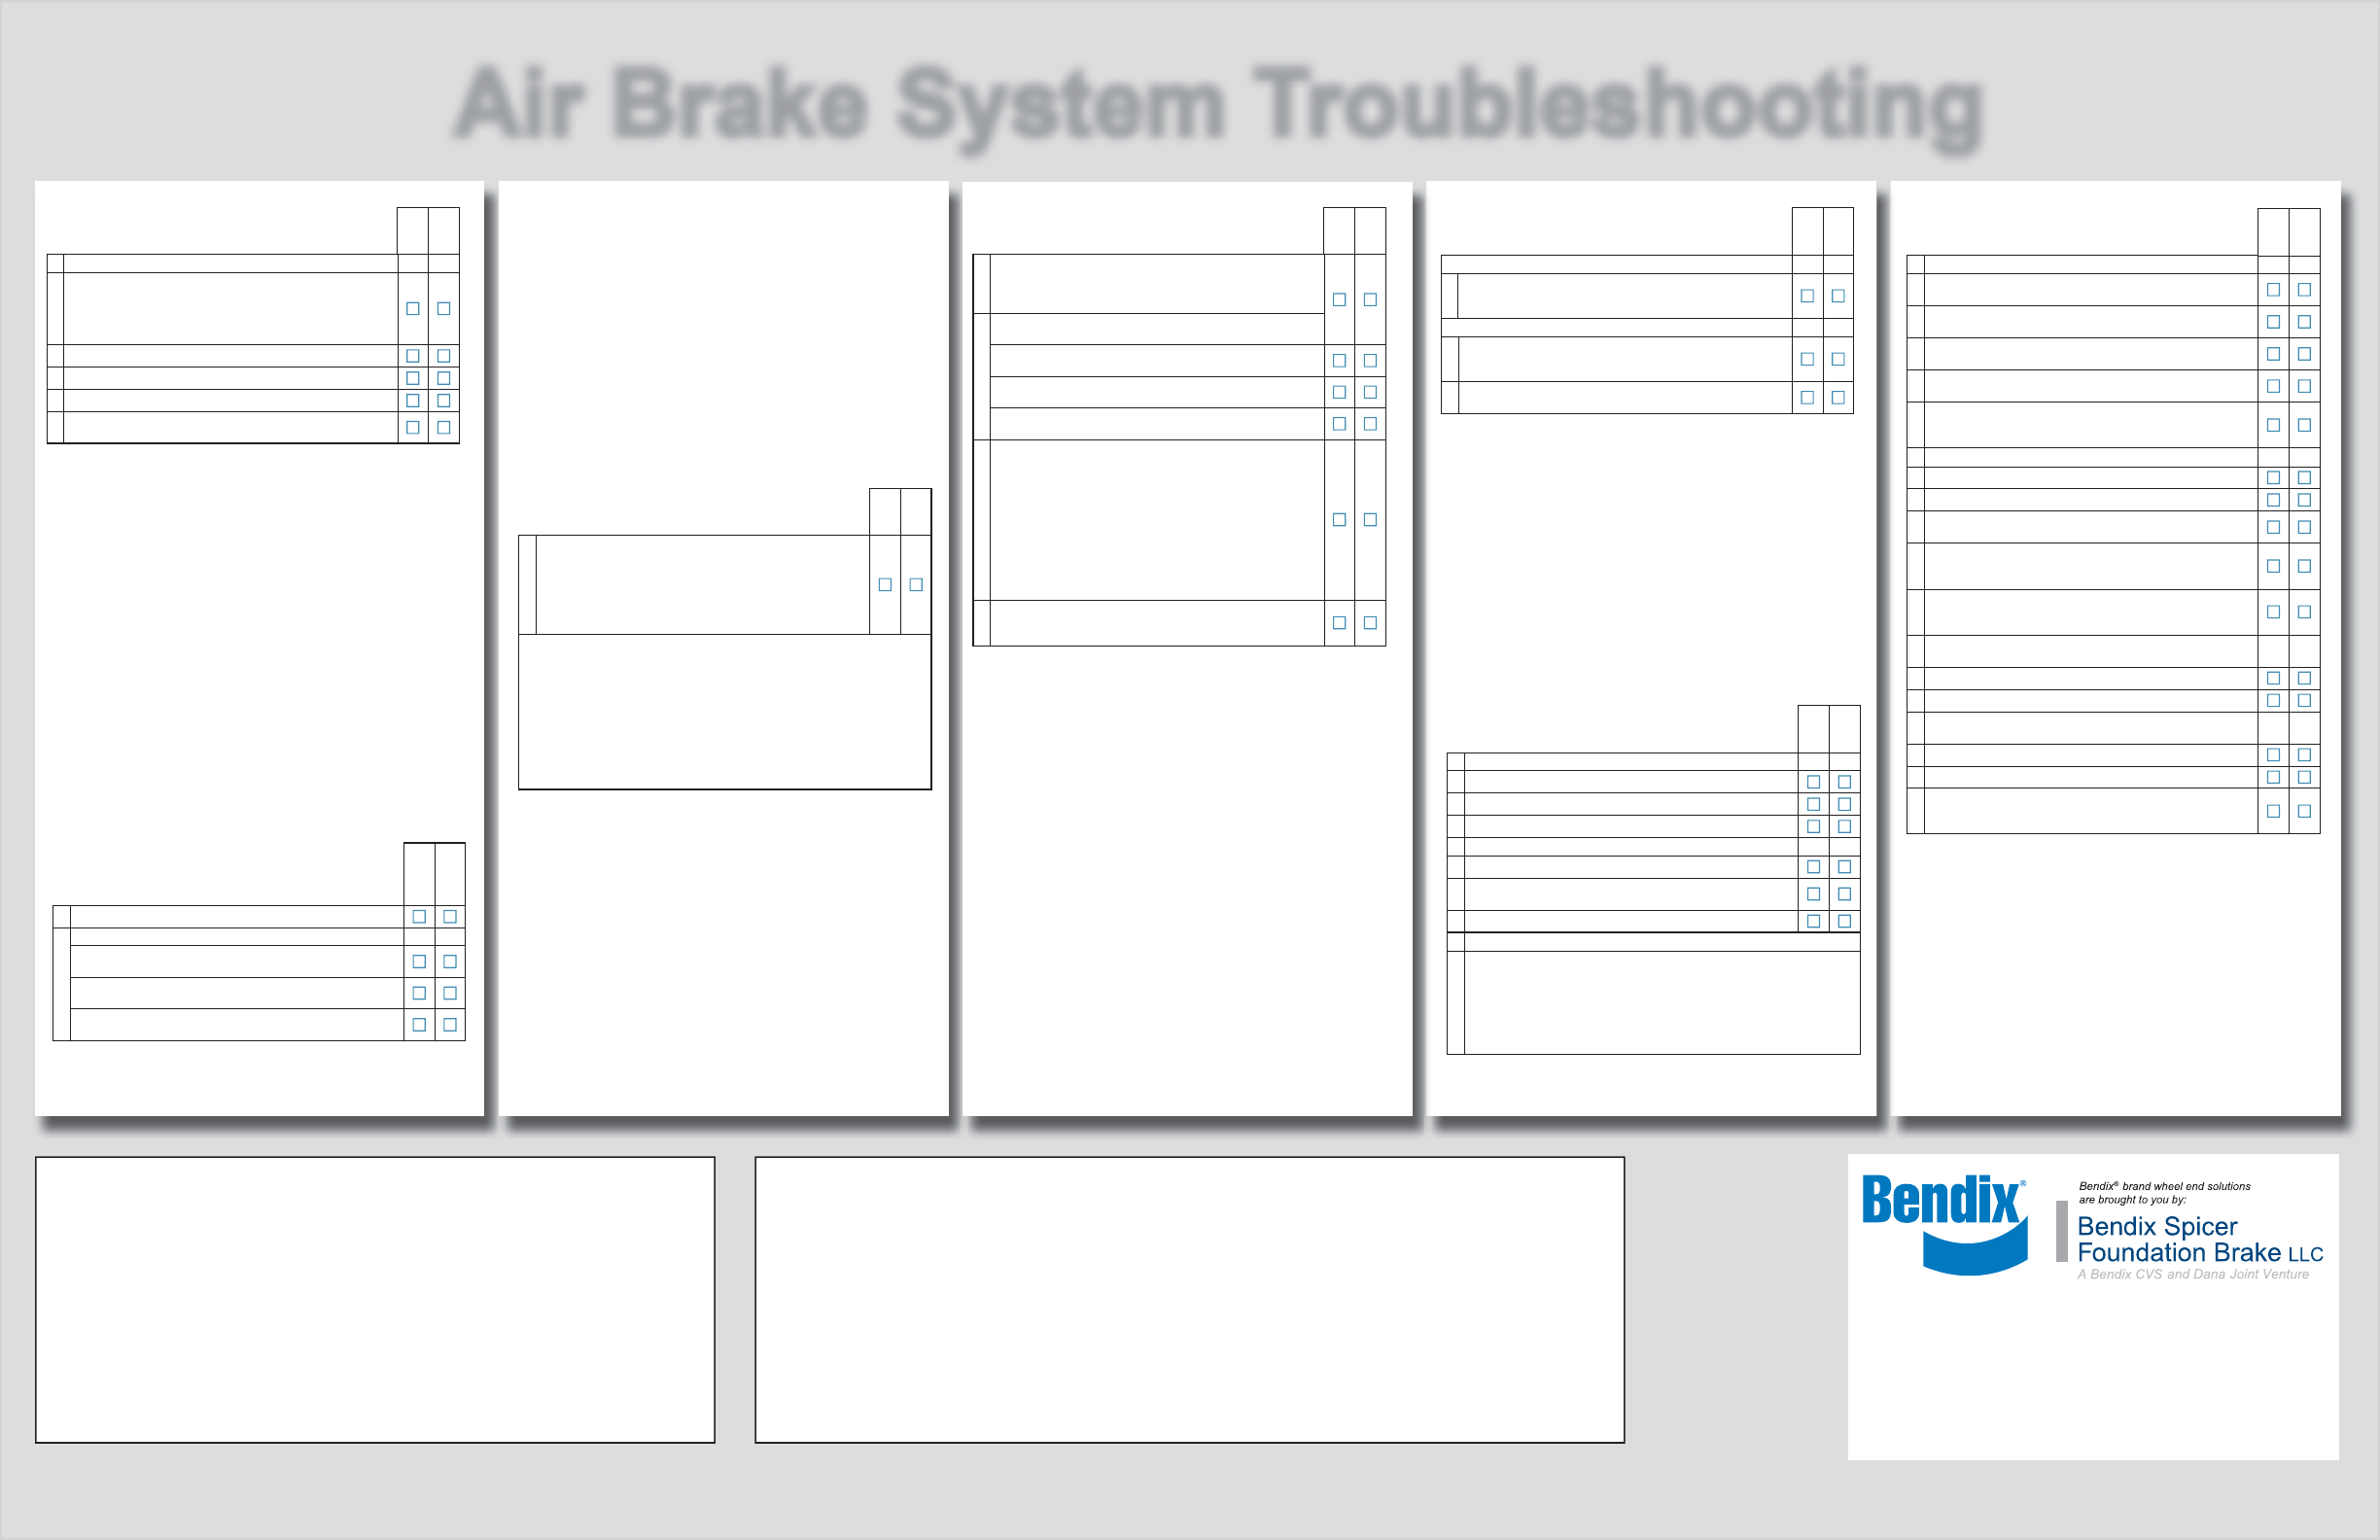 Bendix Bw1396 Users Manual Version Of BW1231b Released